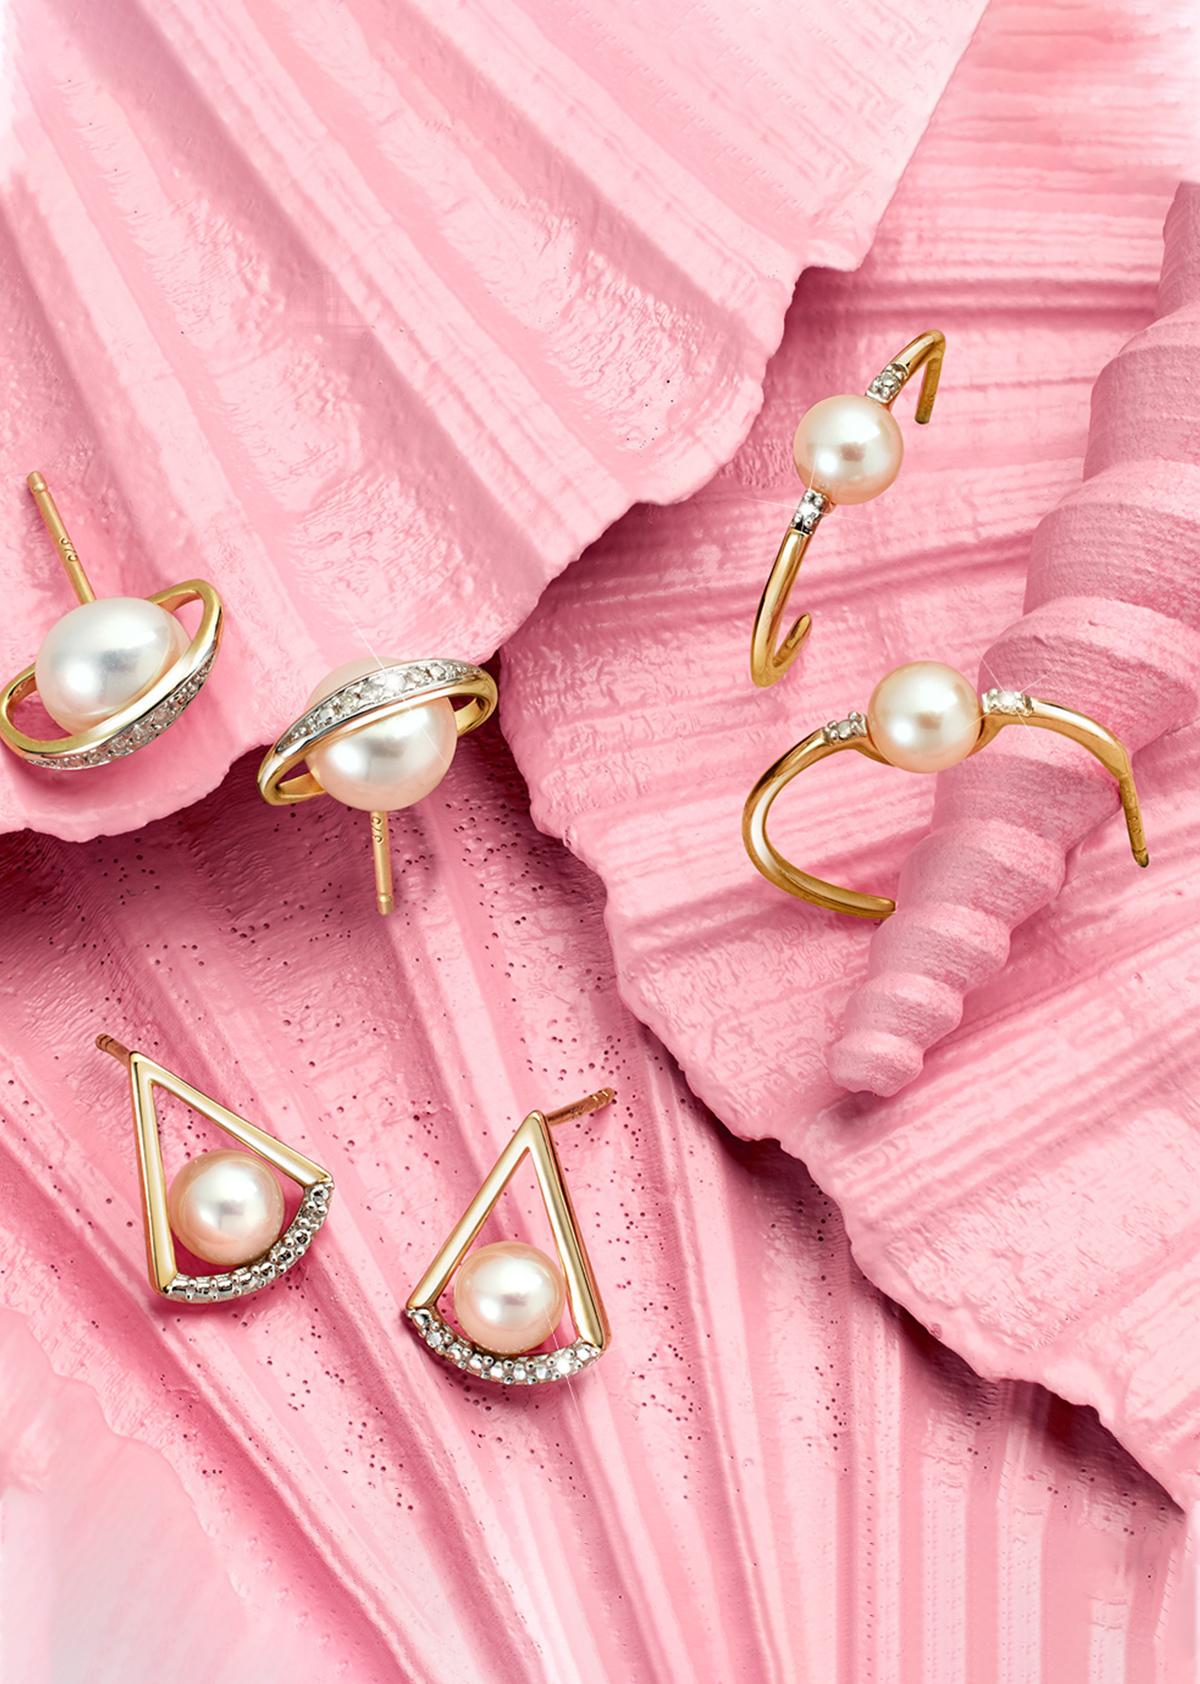 The Modern Girl's Guide to Pearl Jewellery